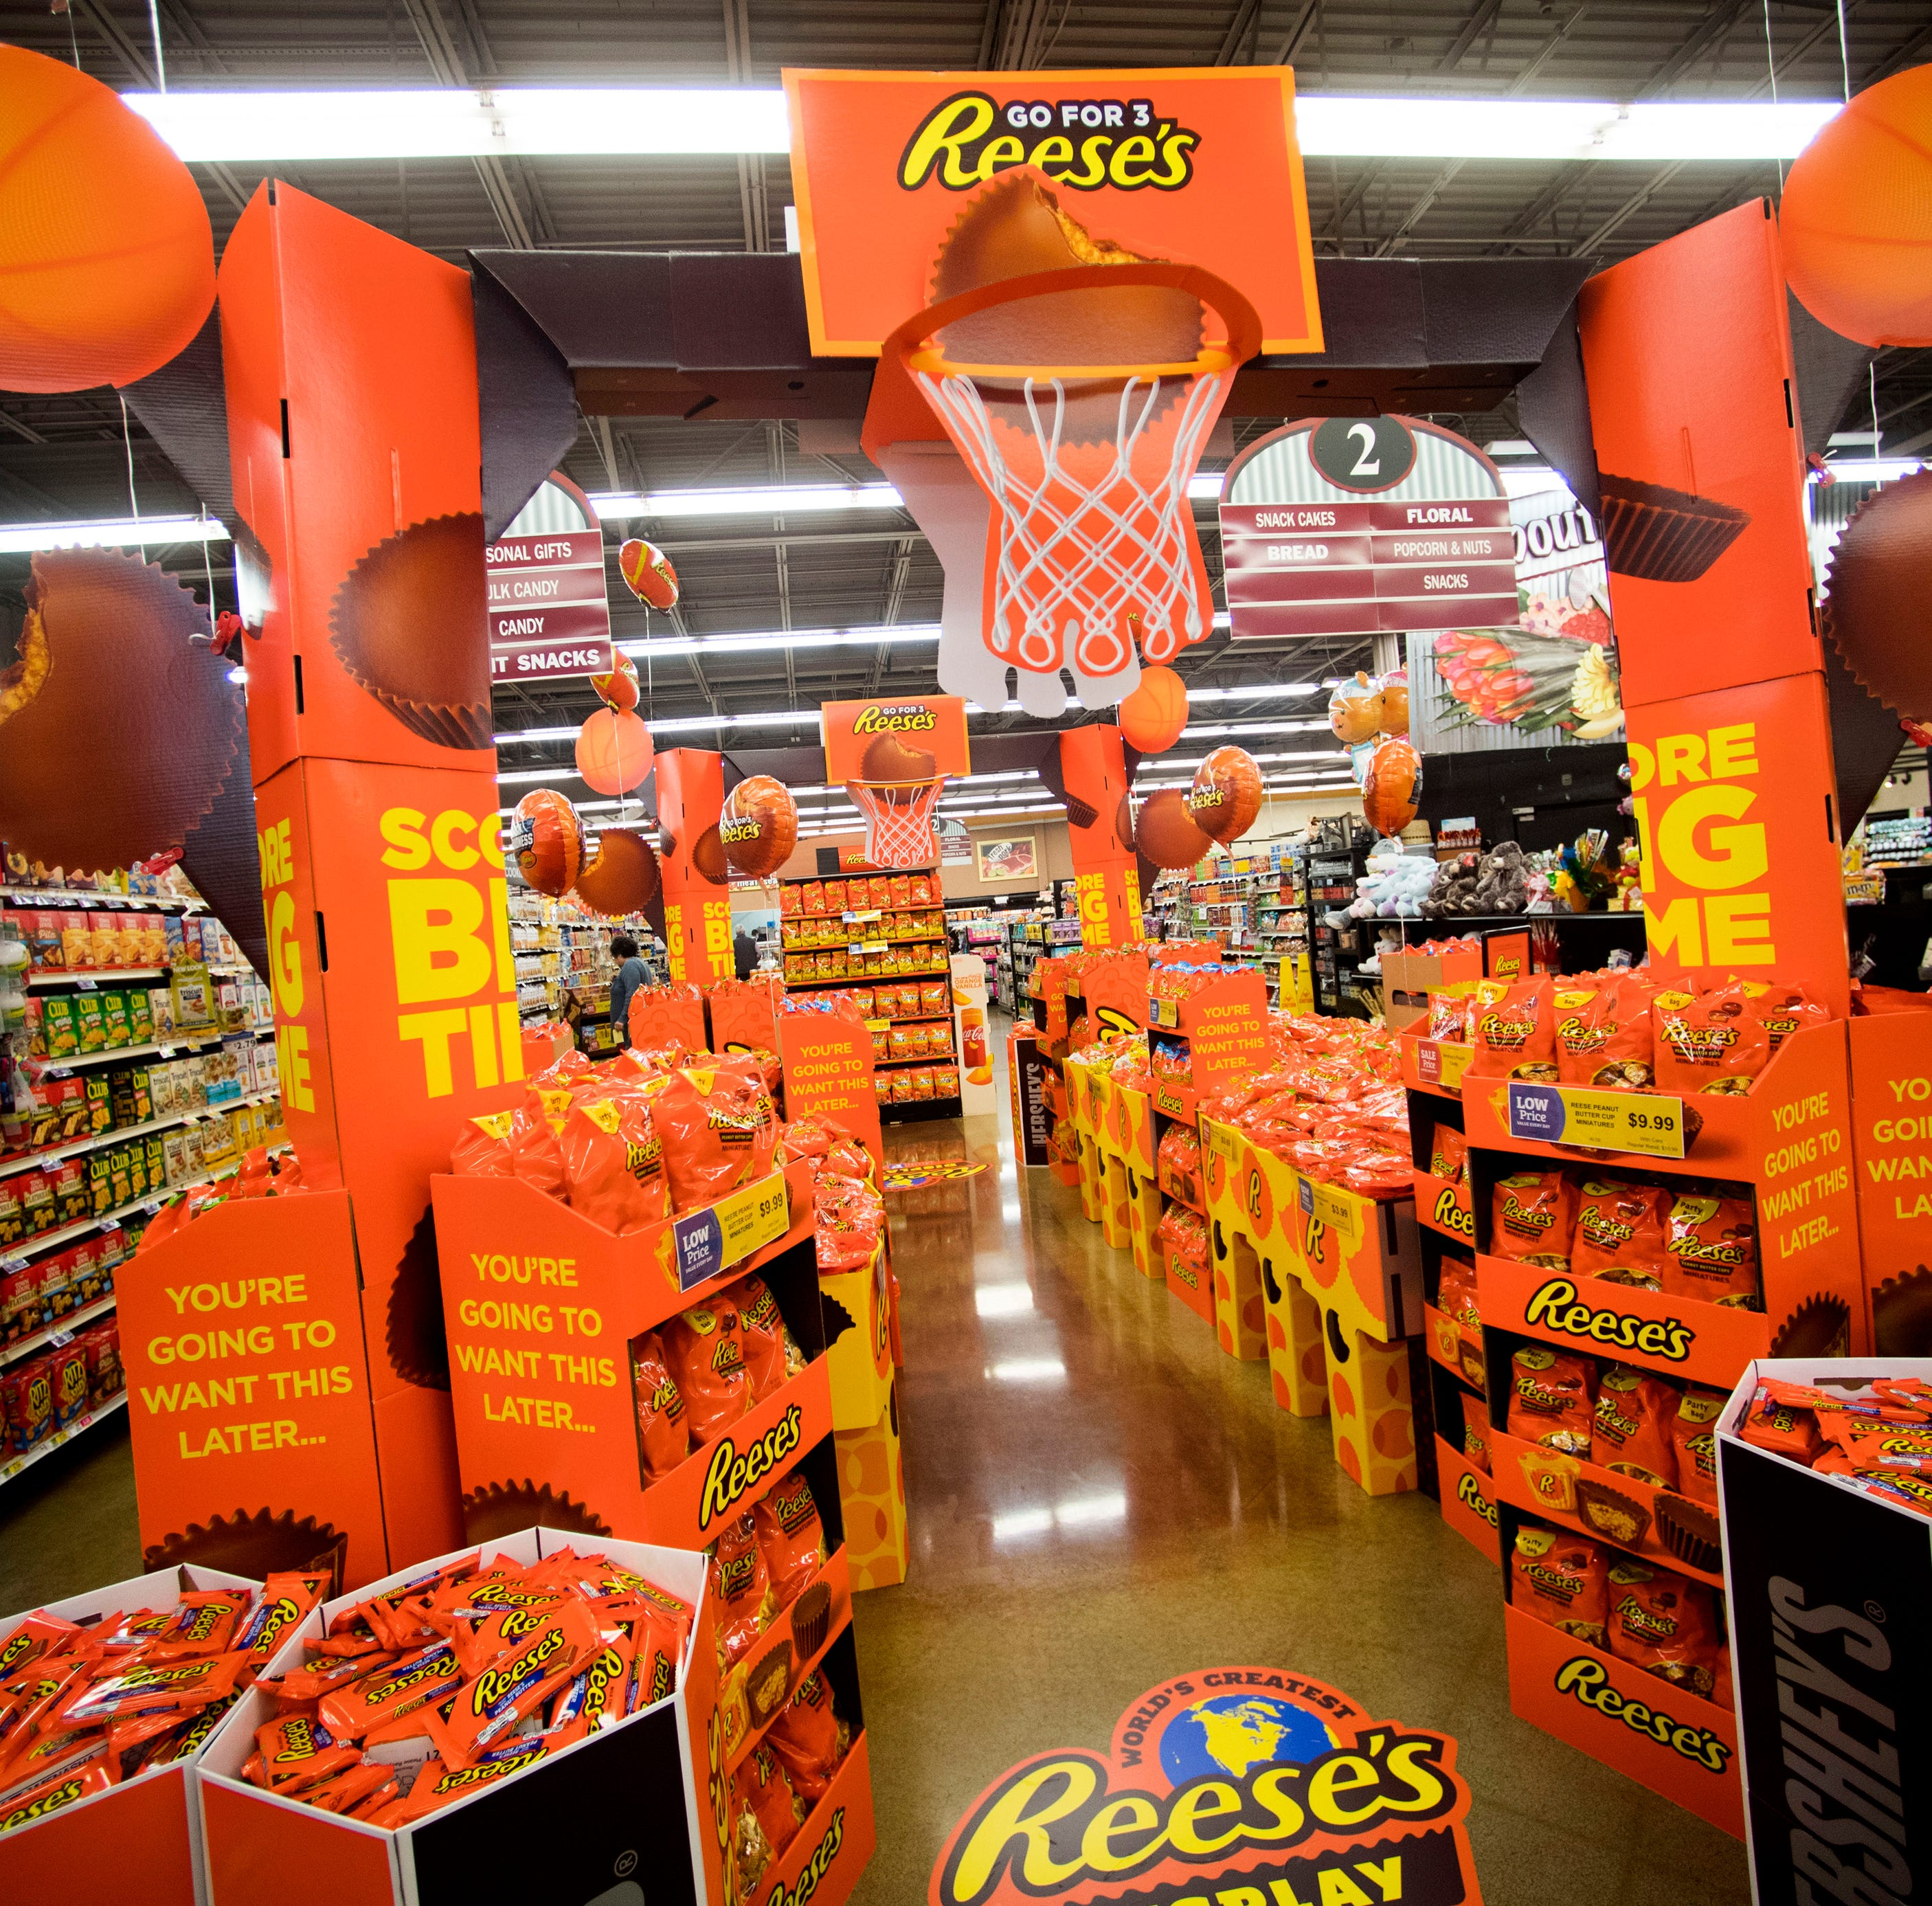 World's Greatest Reese's Display, with 1 million candies, comes to Knoxville Food City